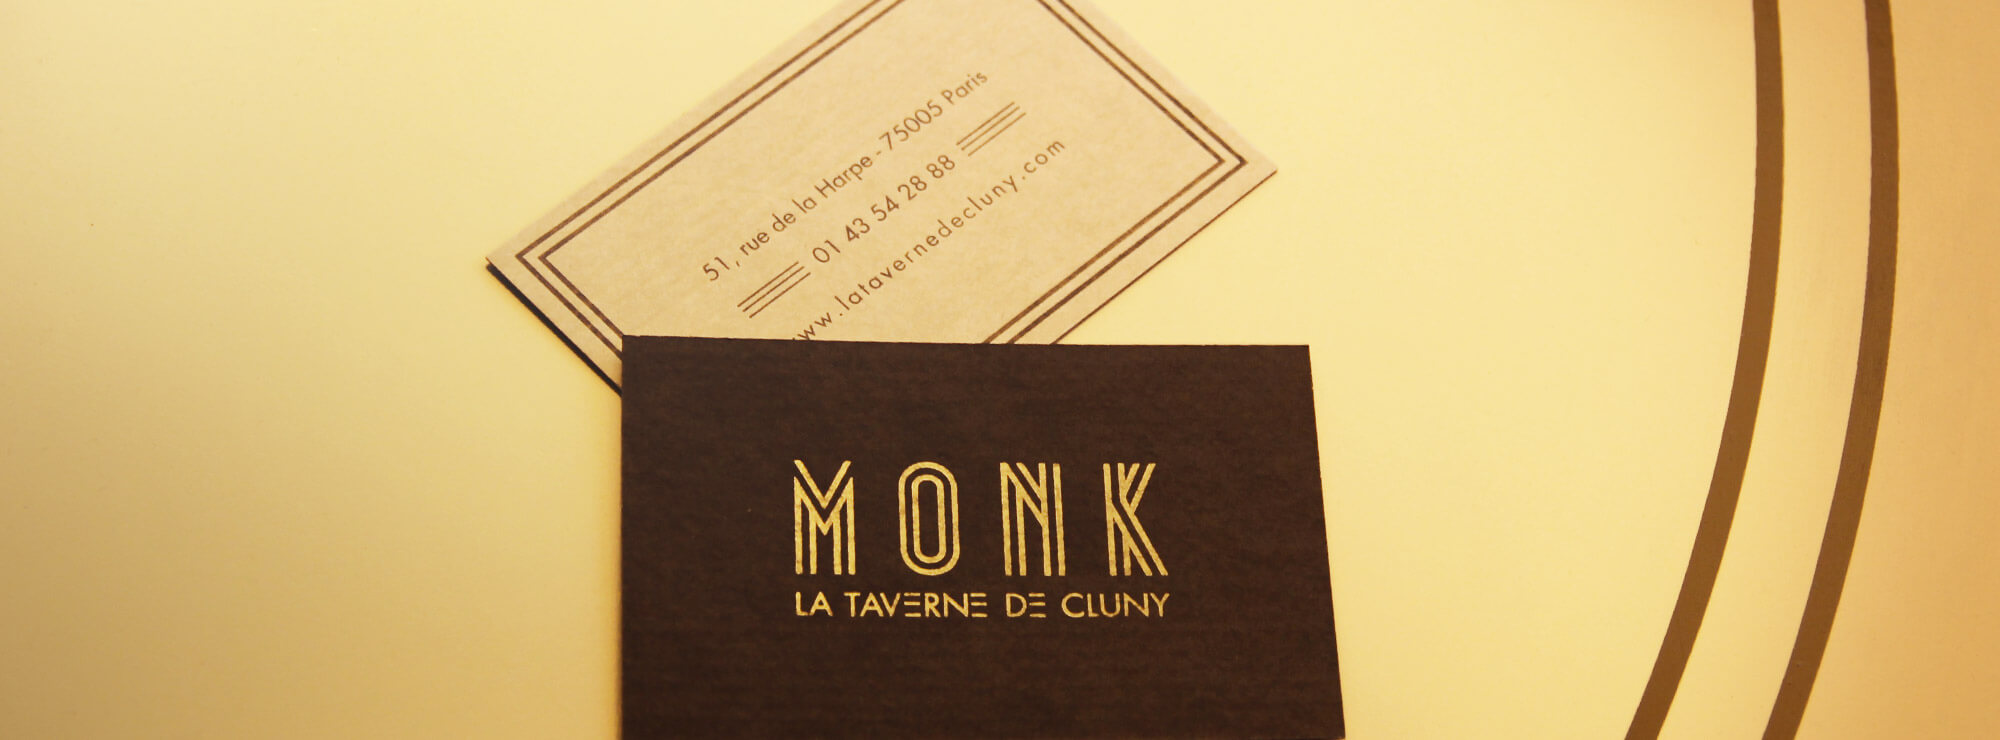 Préférence MONK - BEER BAR - Graphic design by Made for you HG62